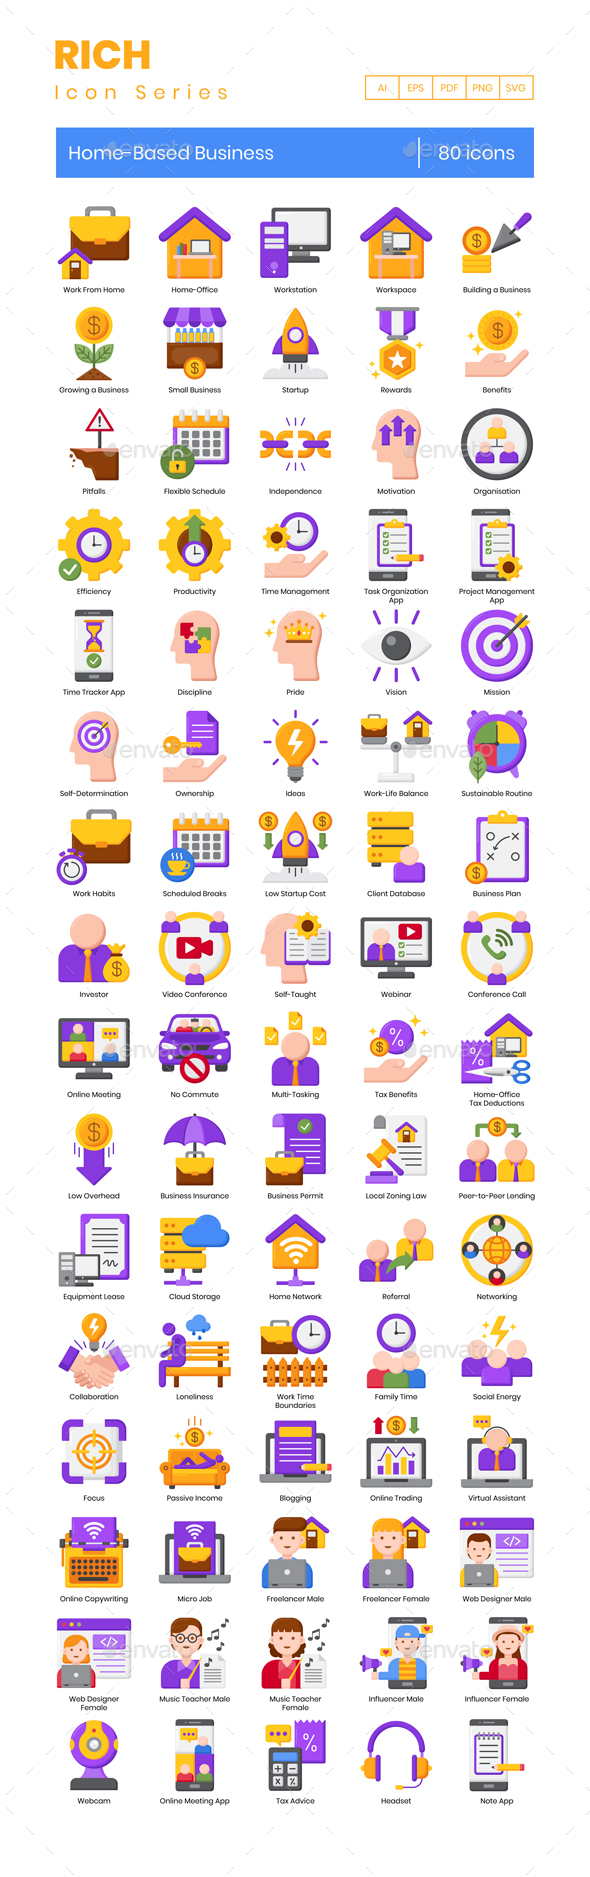 80 Home-Based Business Icons   Rich Series